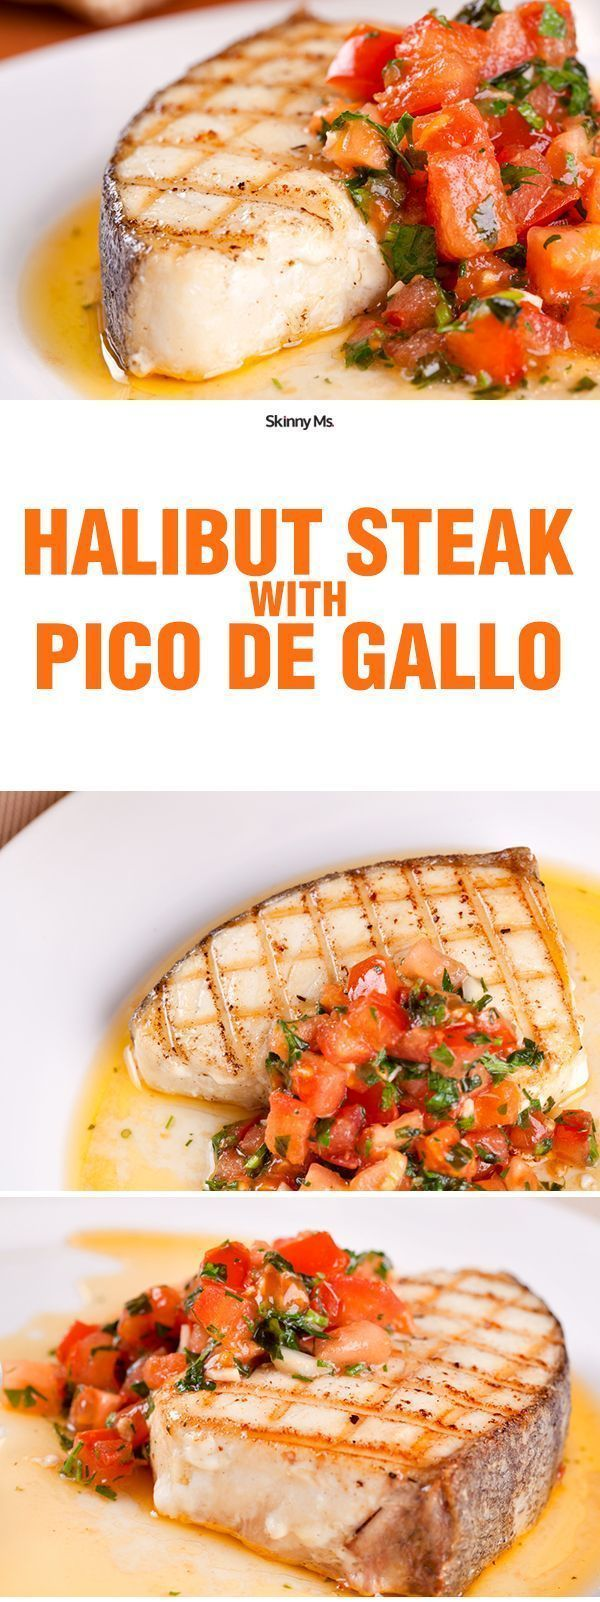 Halibut Steak with Pico de Gallo // This recipe has a whopping 43-grams of protein!!